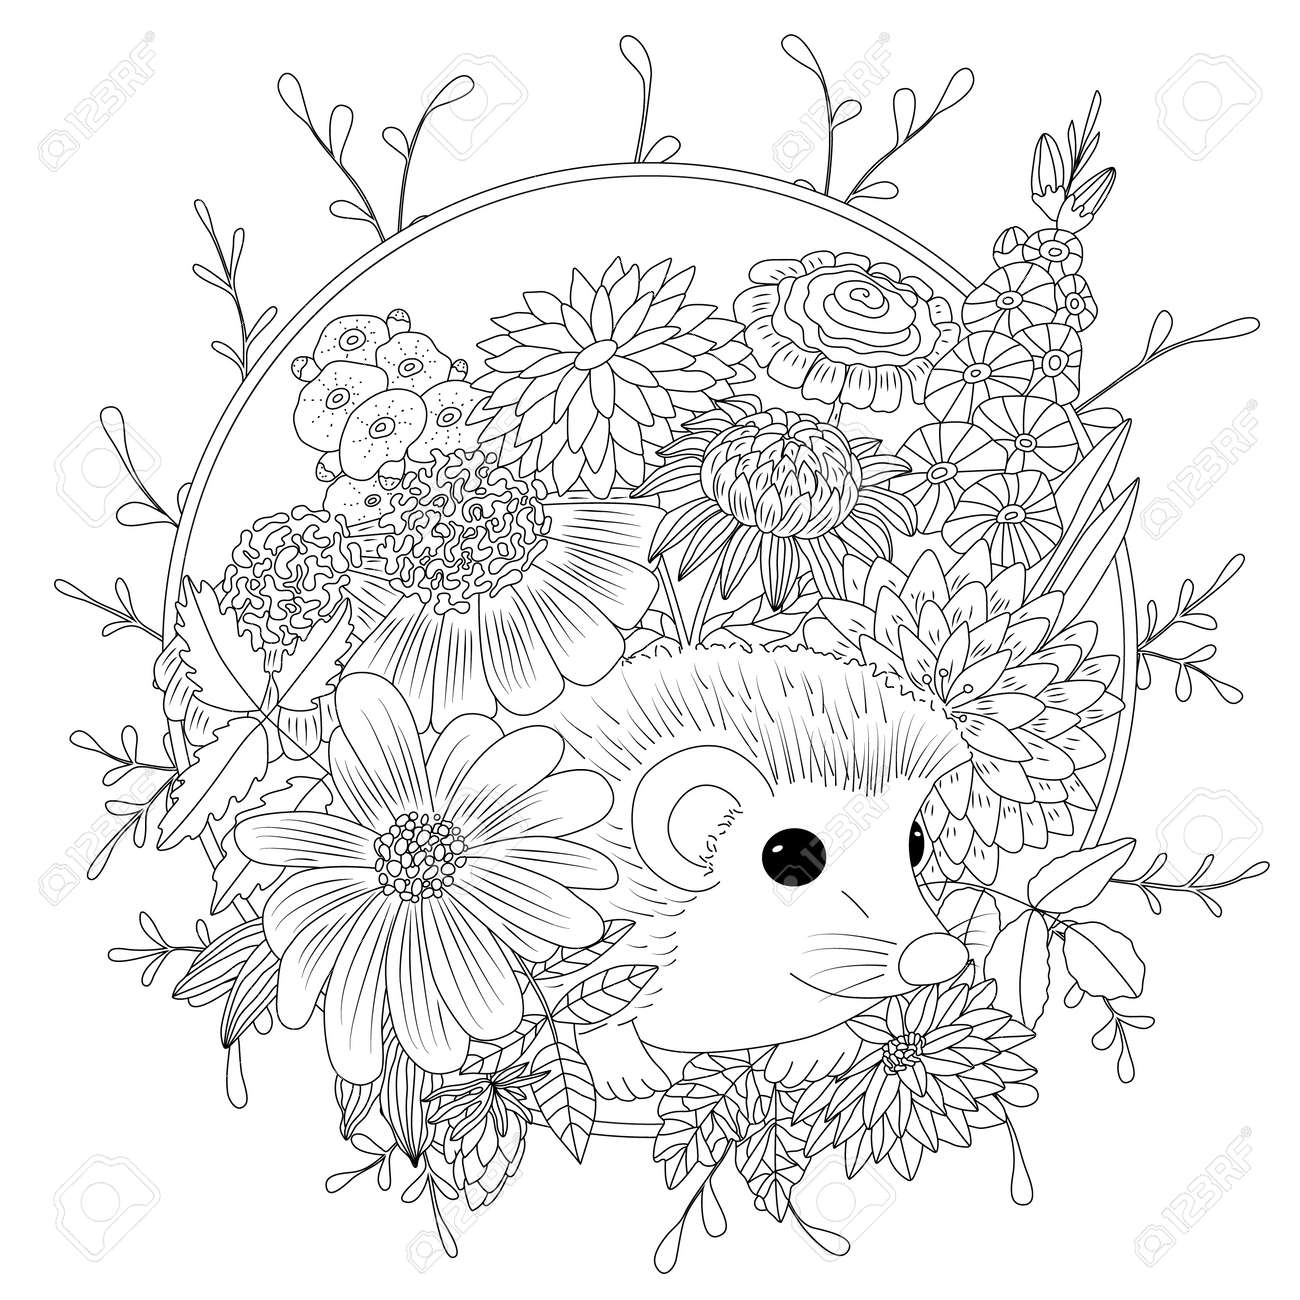 Vector Illustration Hedgehog With Flowers Coloring Book Anti Royalty Free Cliparts Vectors And Stock Illustration Image 82692676